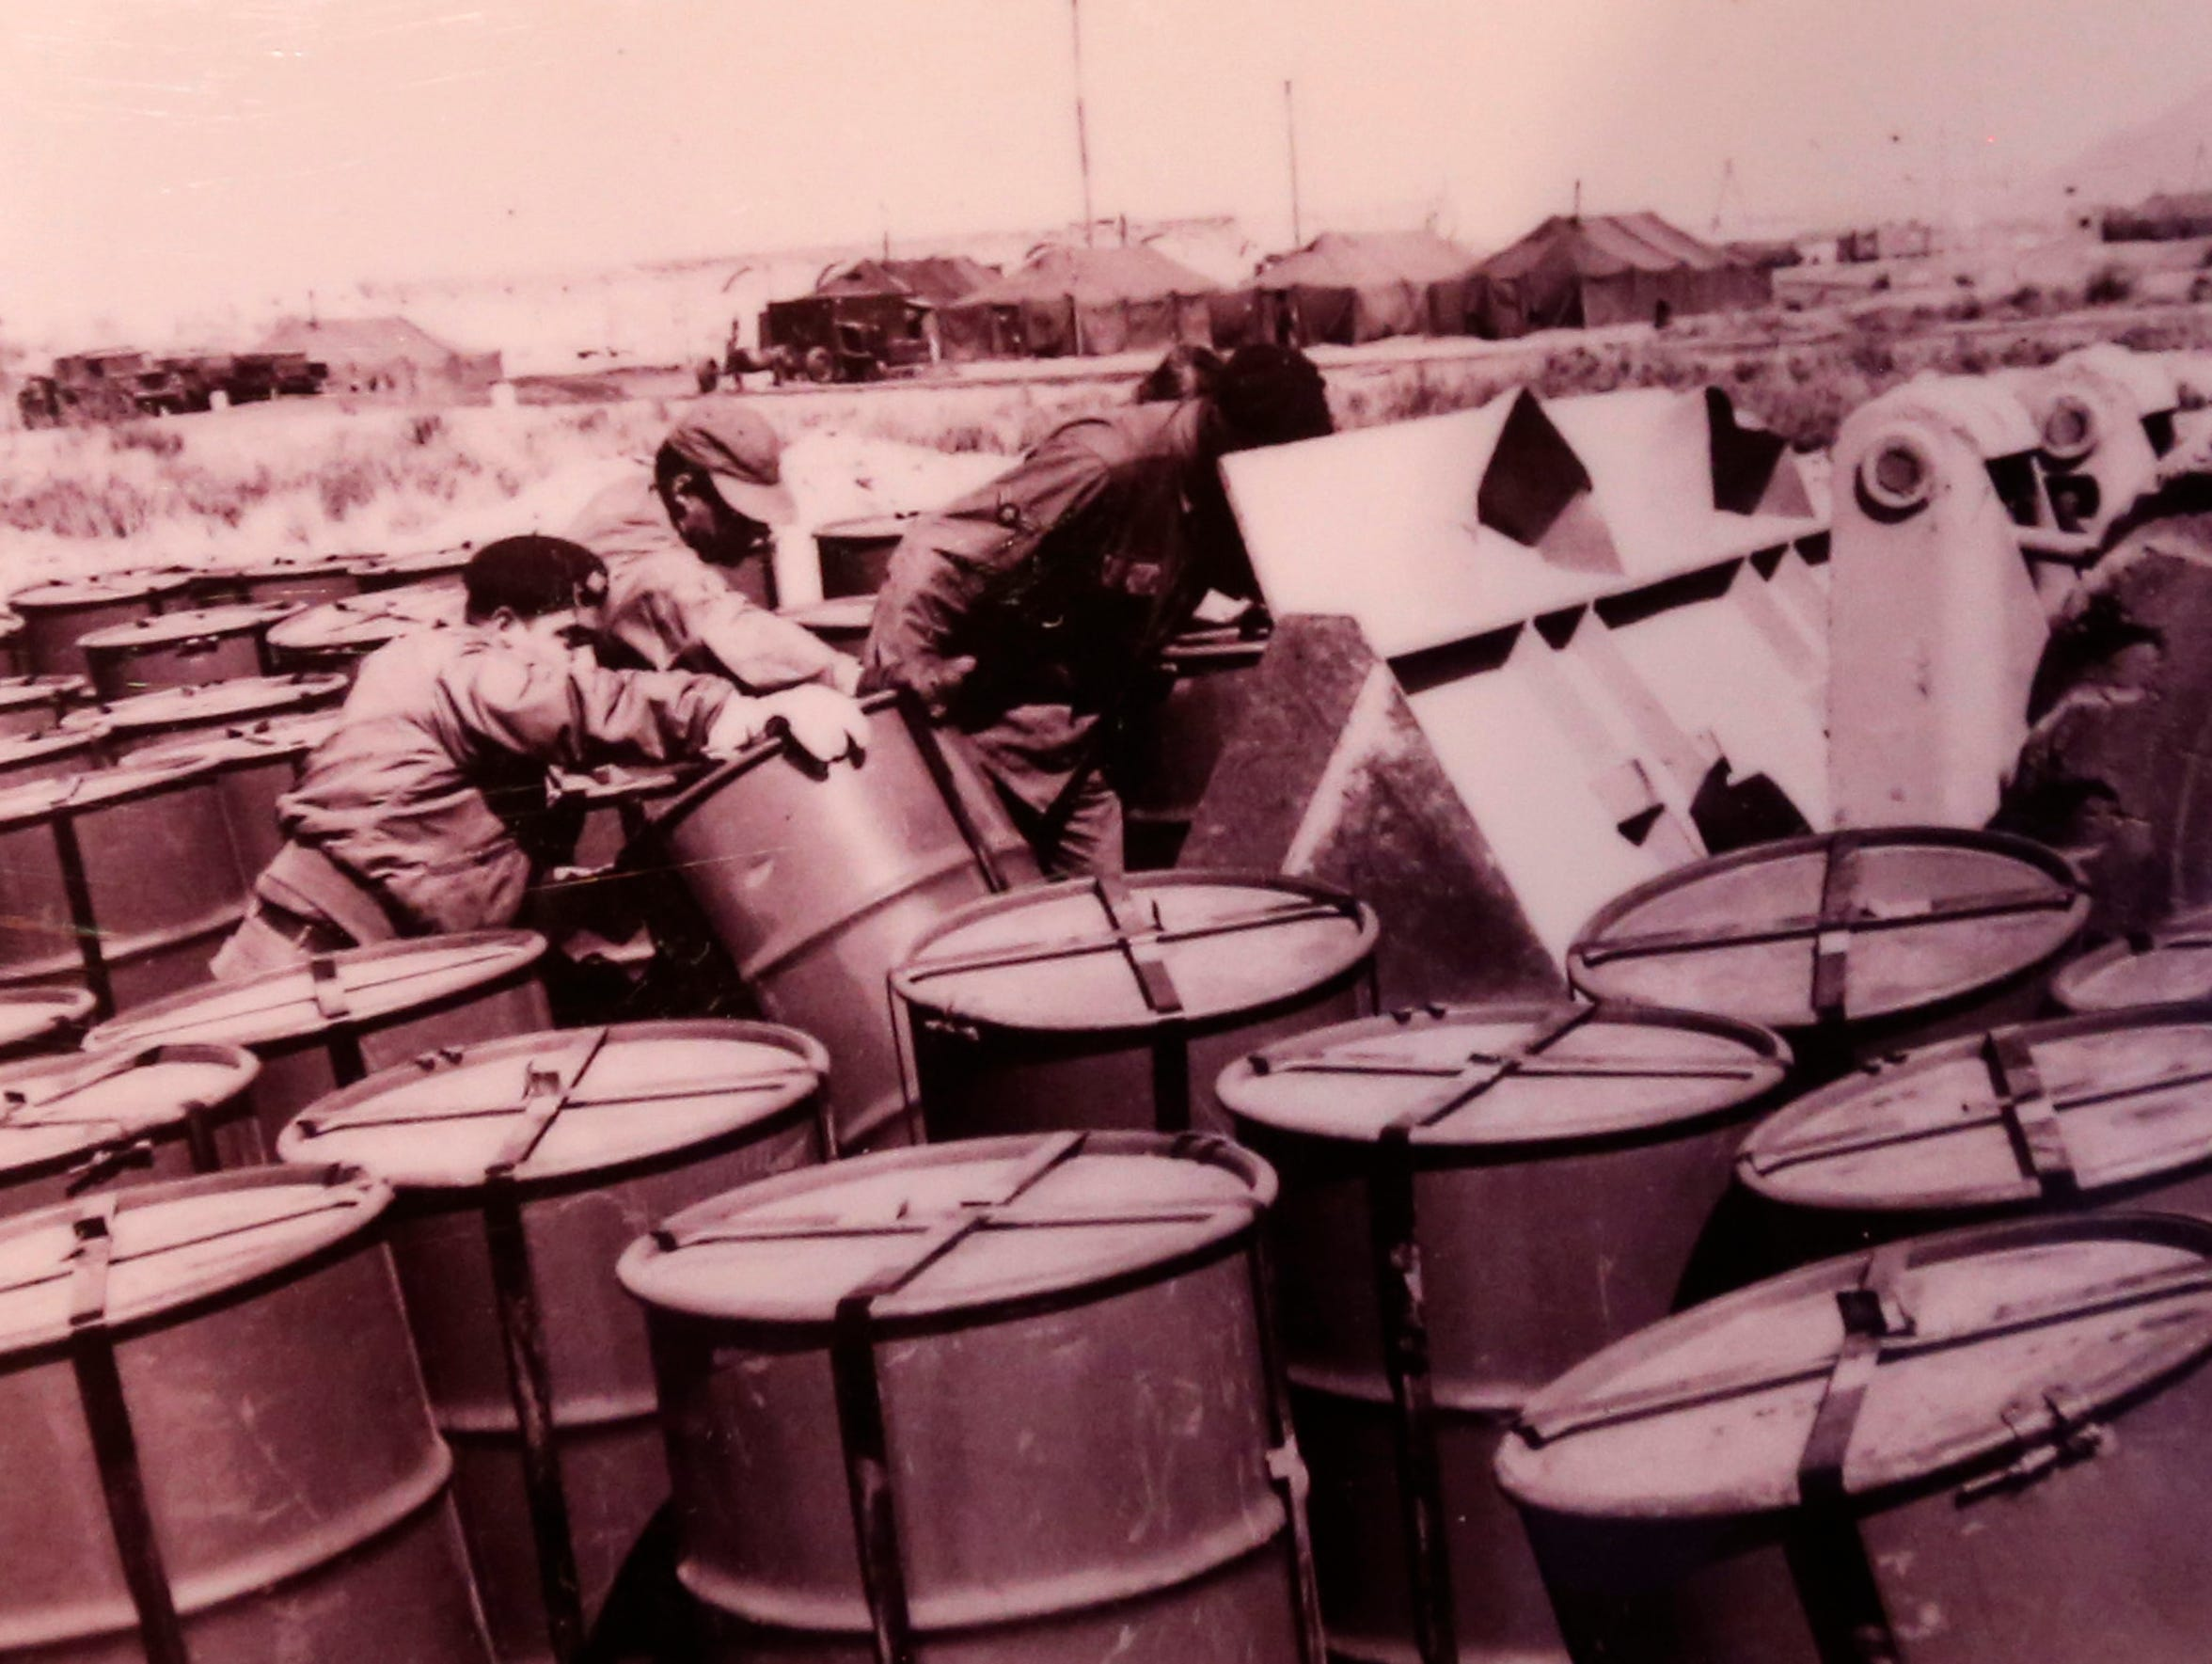 This photo shows soldiers preparing drums that radioactive